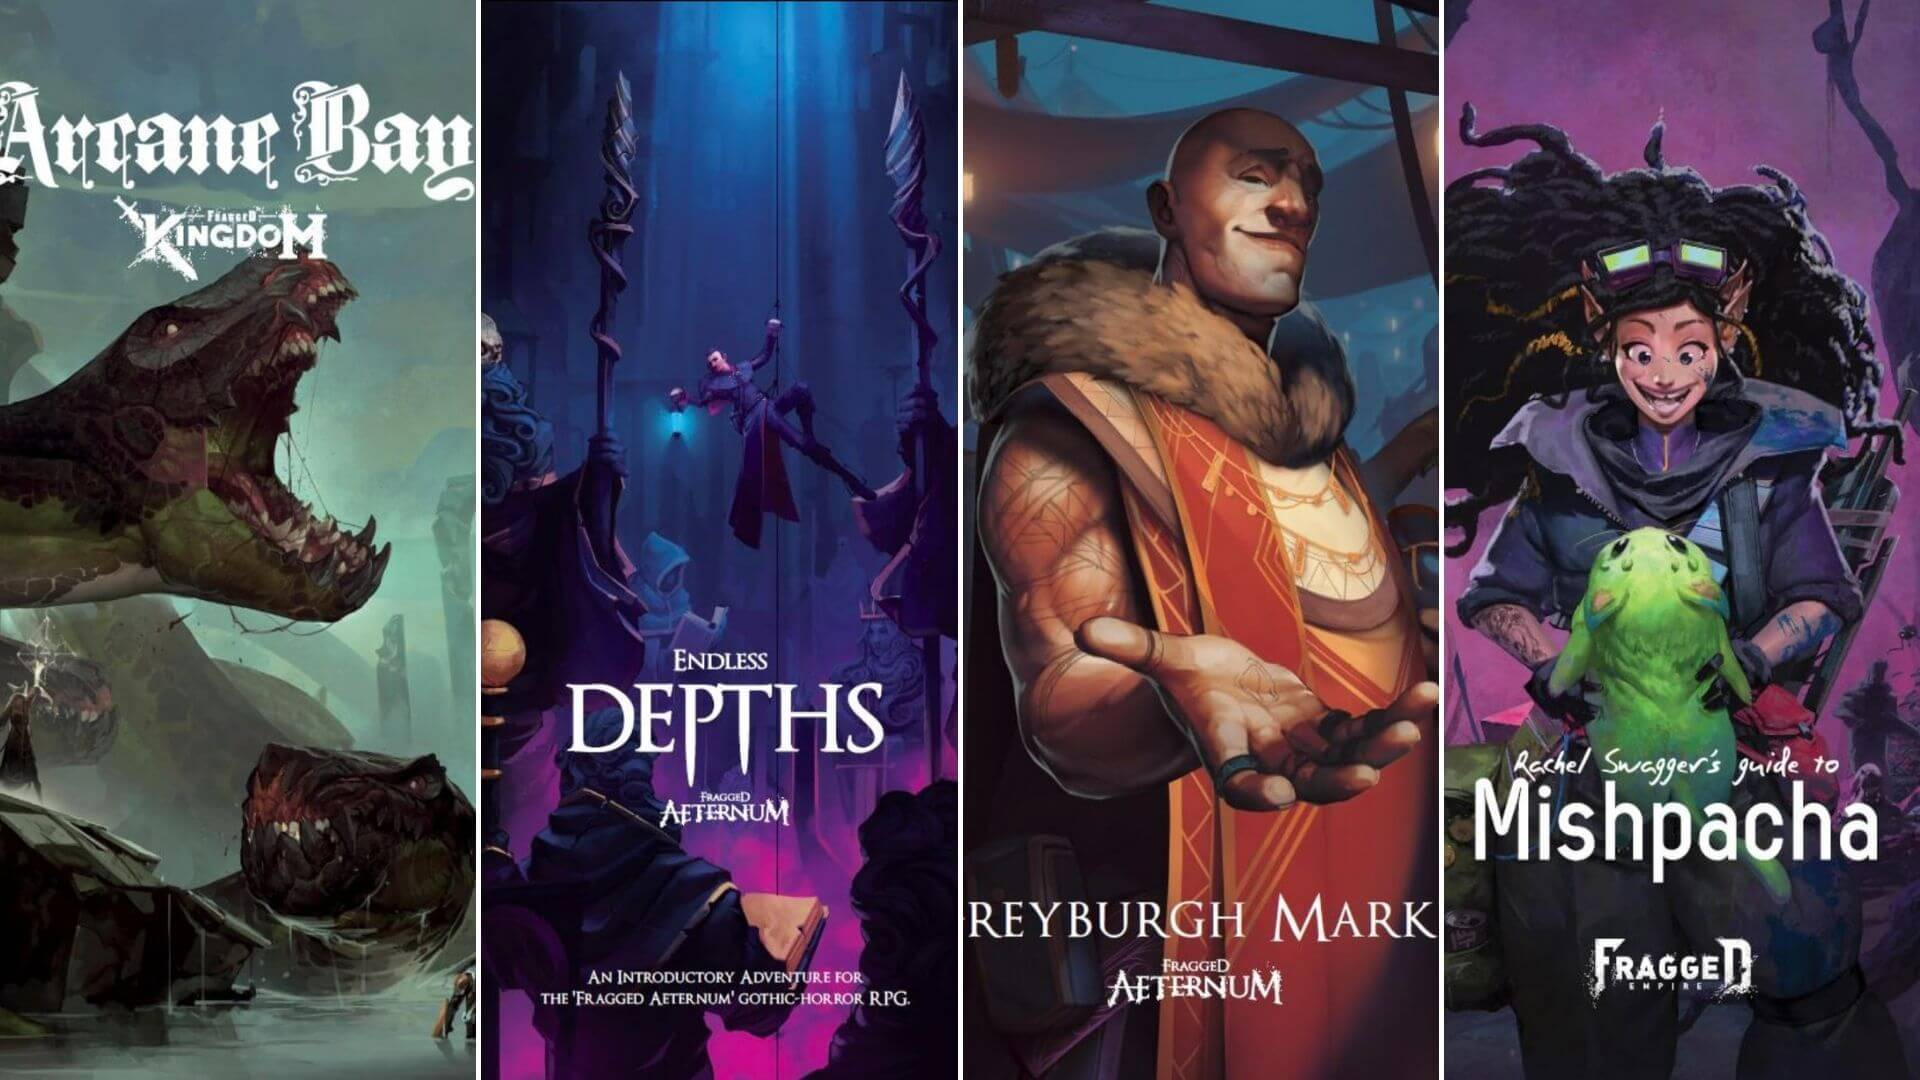 Fragged Empire Tabletop RPG Gets Four New Sourcebooks